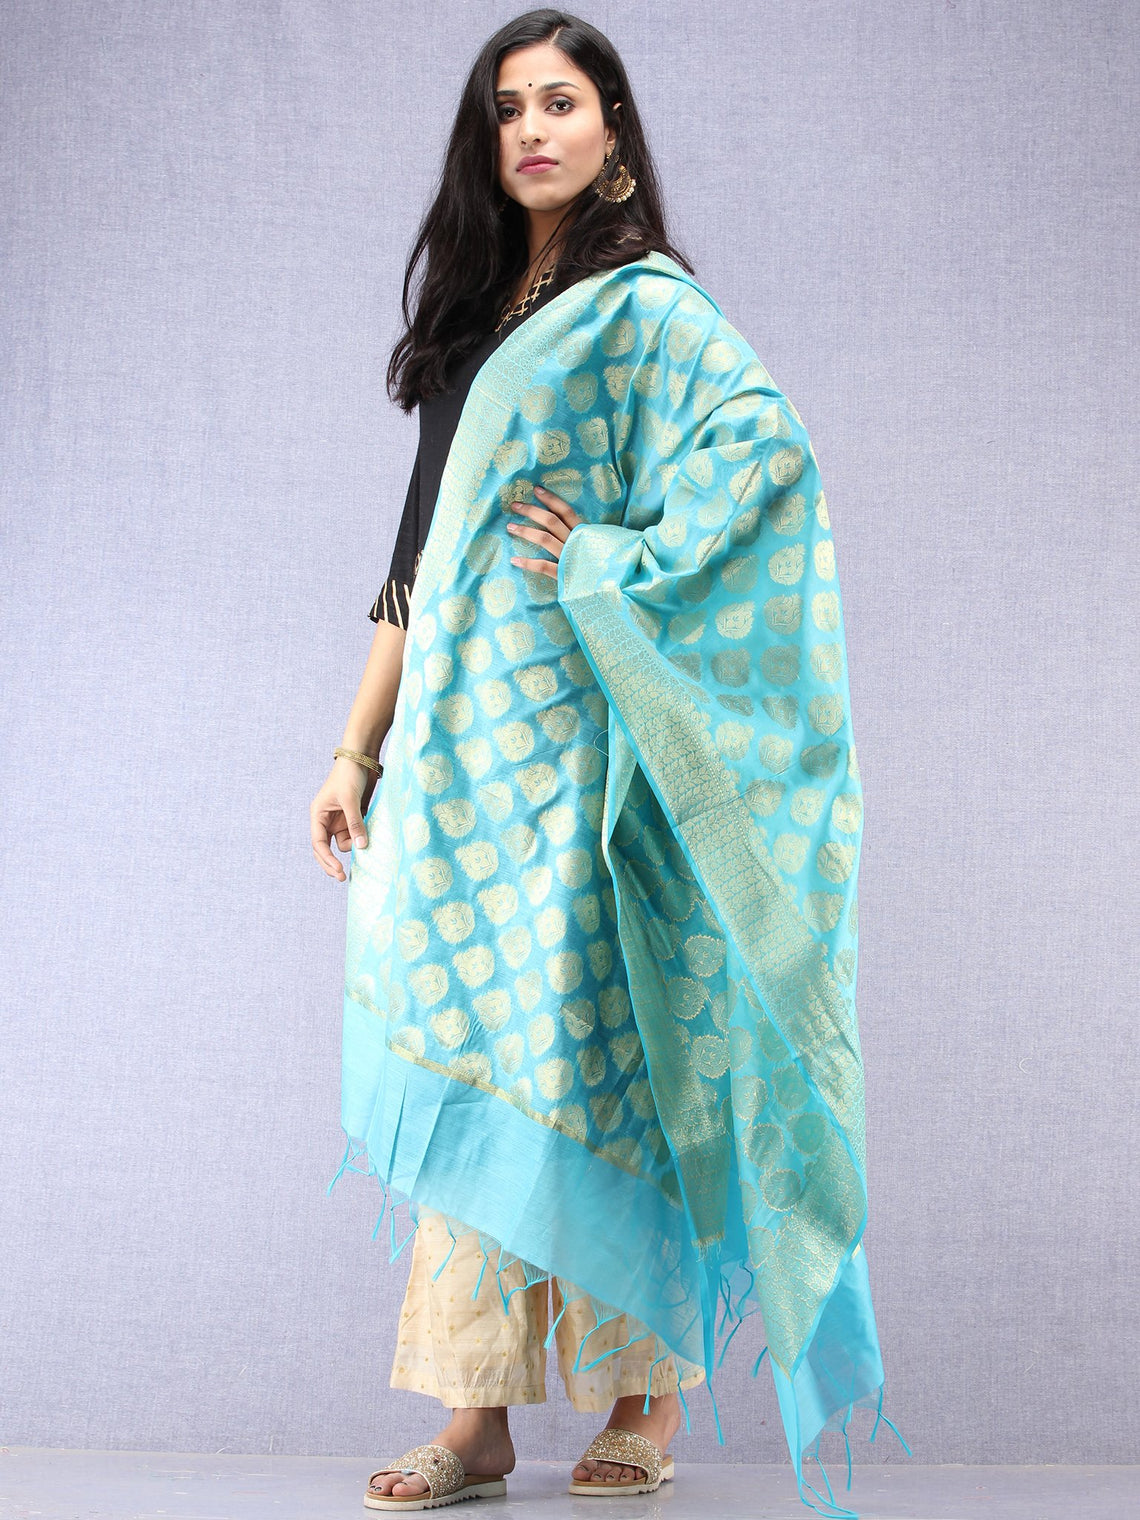 Banarasi Chanderi Dupatta With Zari Work - Sky Blue & Gold - D04170860